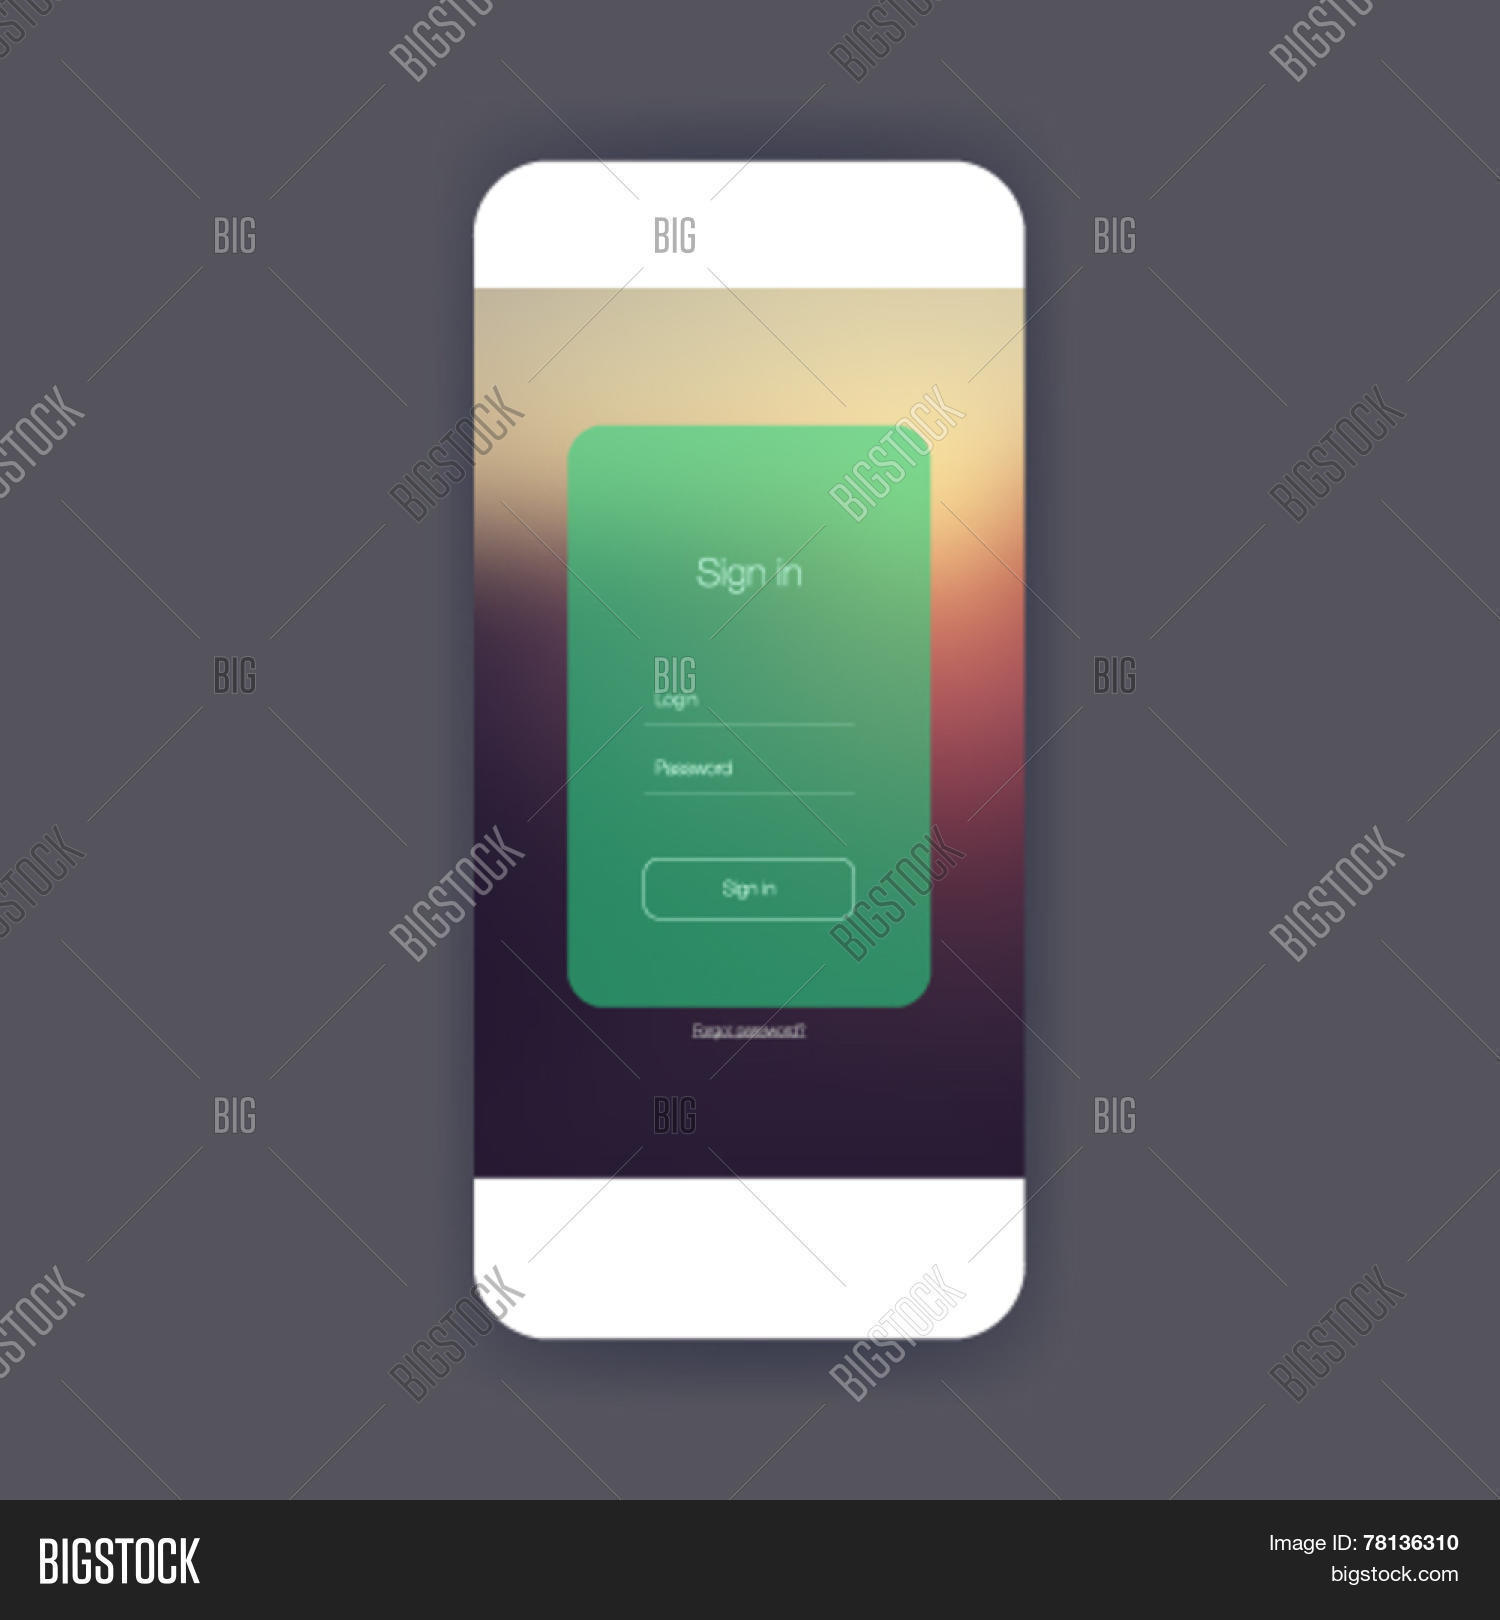 Flat ui sign in screen for mobile app design or wireframe ...